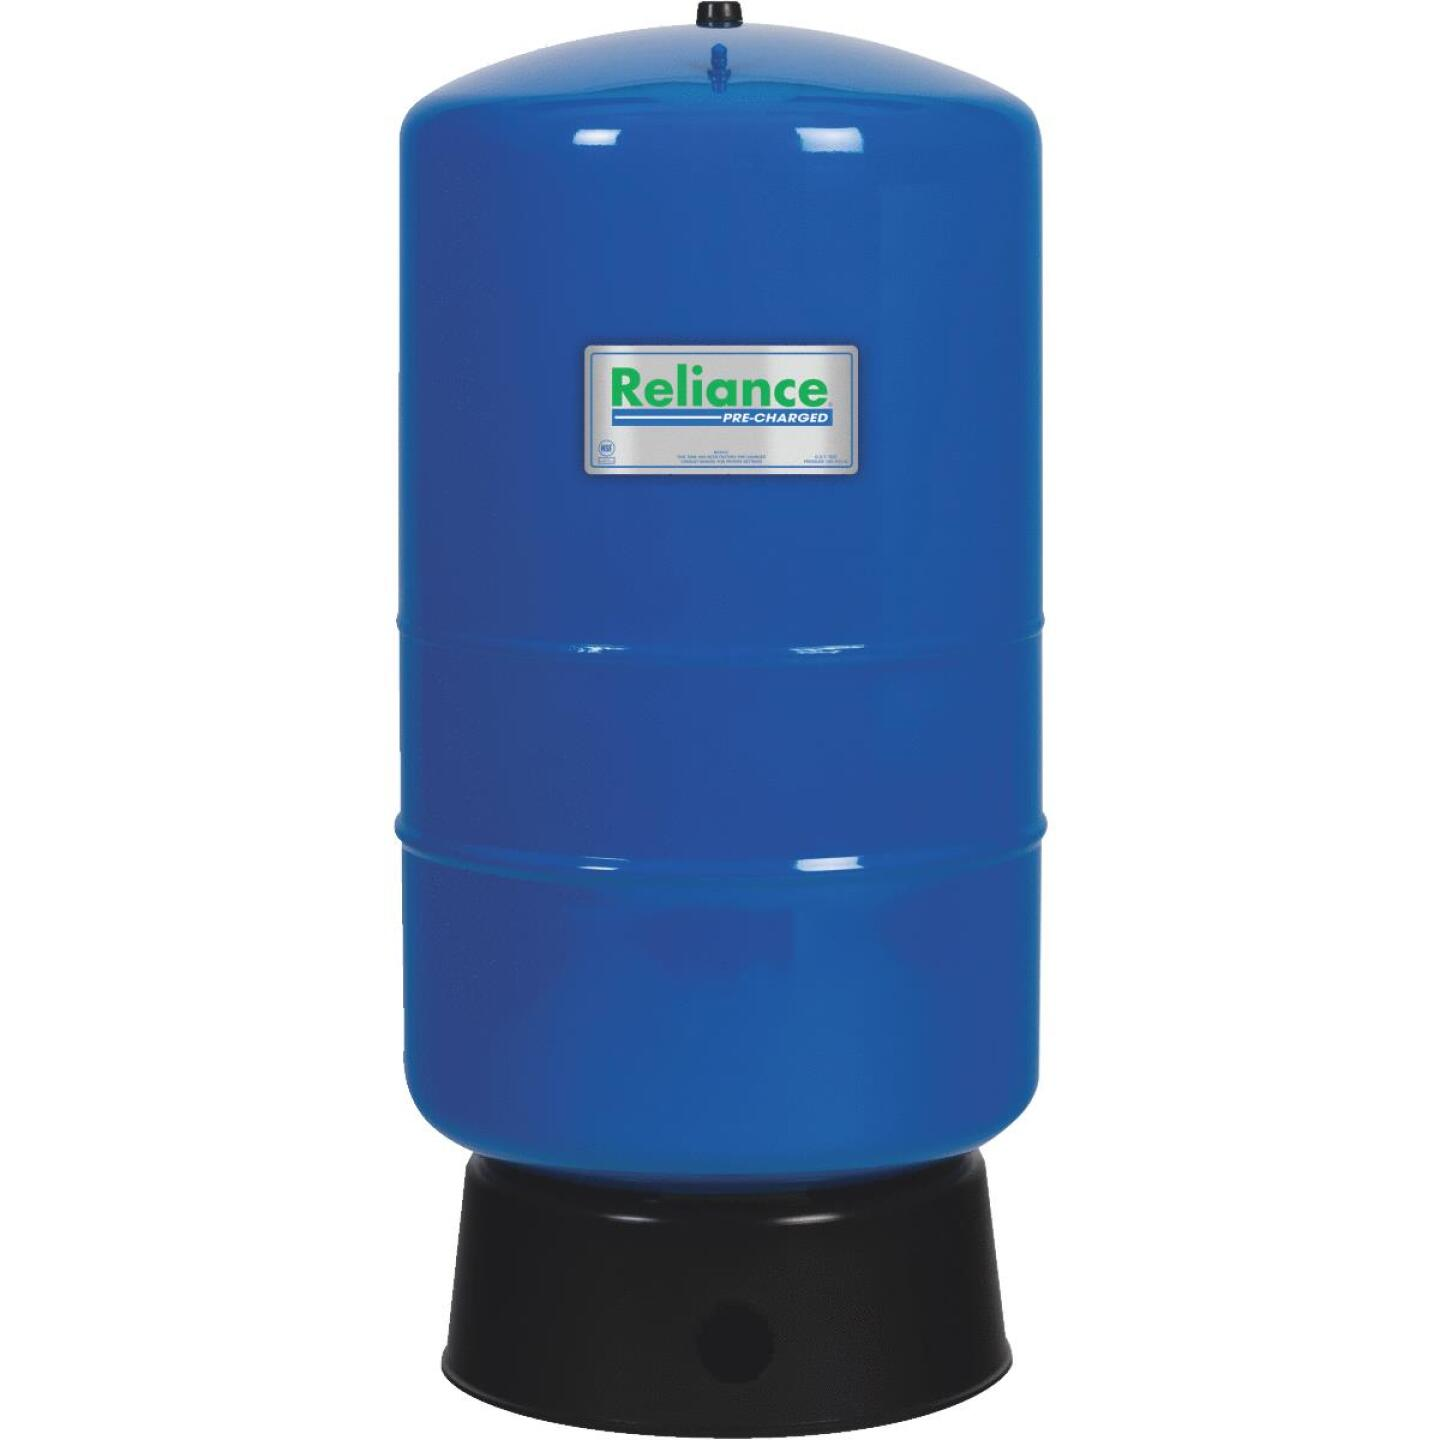 Reliance 20 Gal. Vertical Free-Standing Pressure Tank Image 1